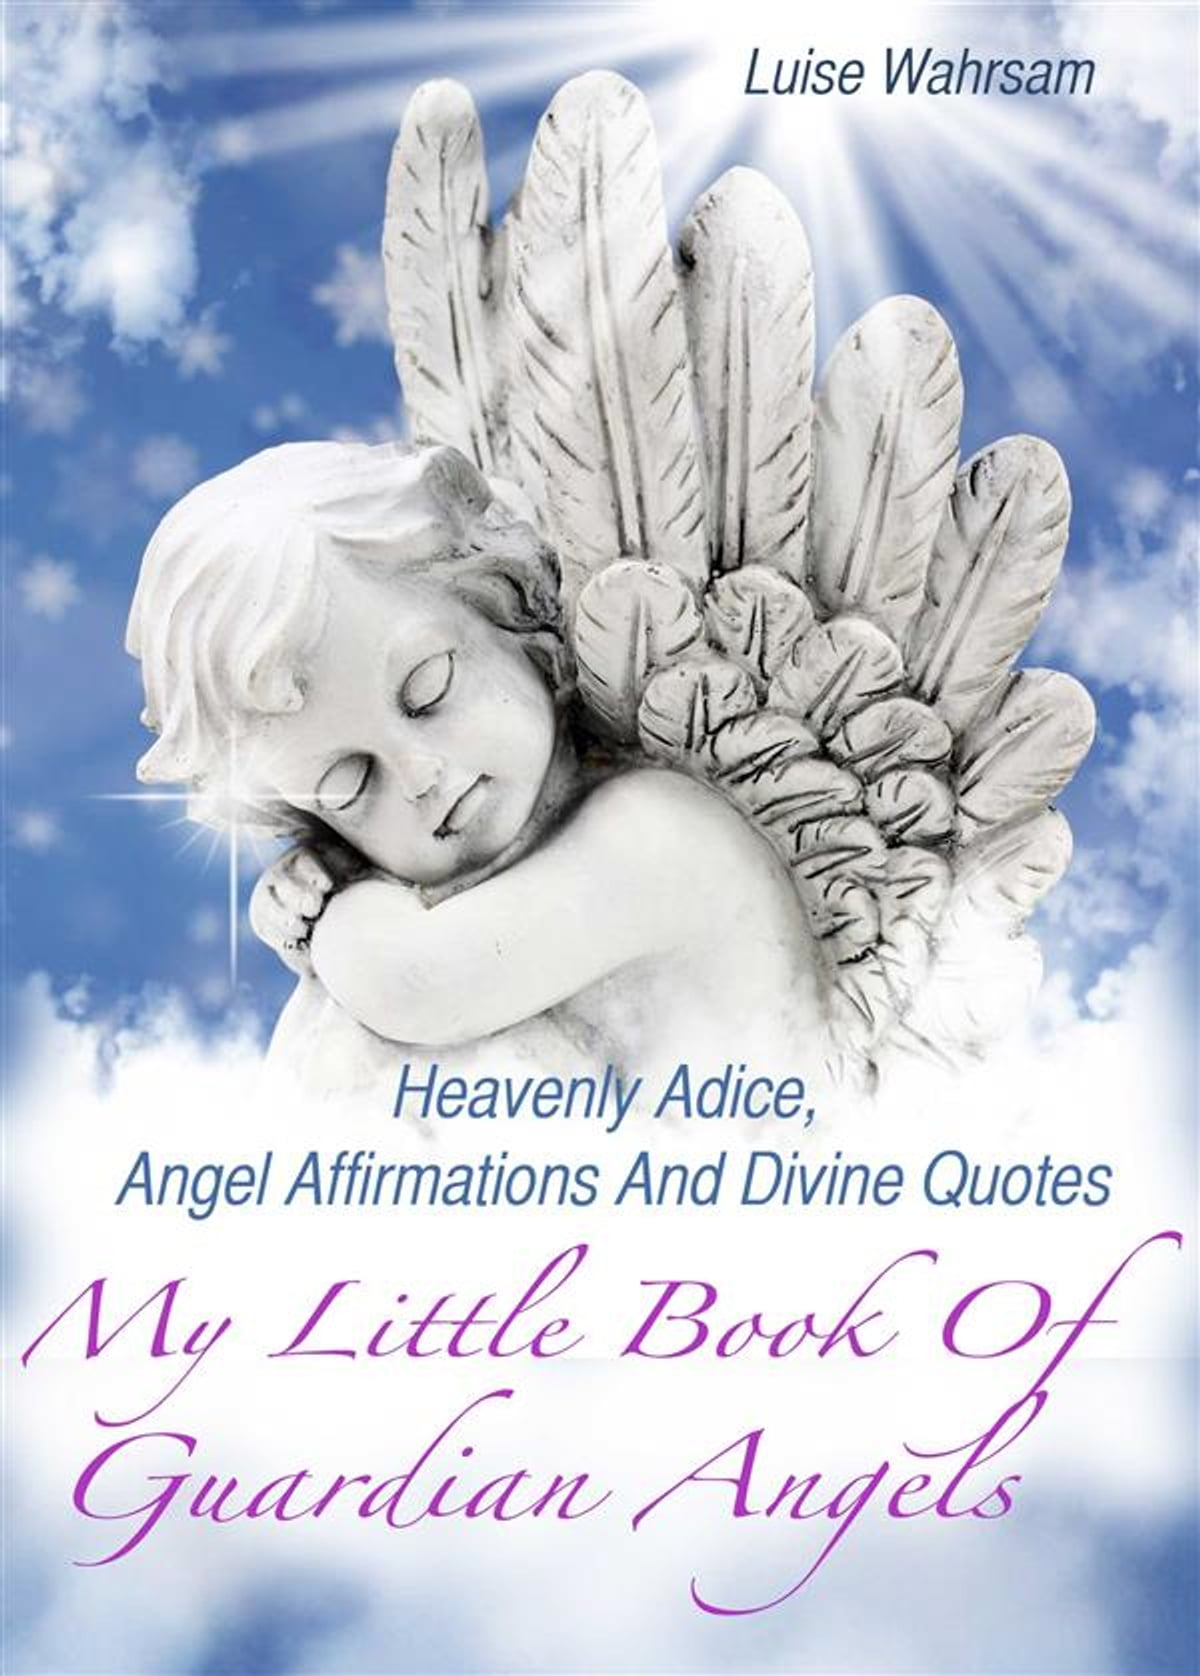 My little book of guardian angels heavenly adice angel affirmations and divine quotes how to get in touch with your spiritual guides and angels